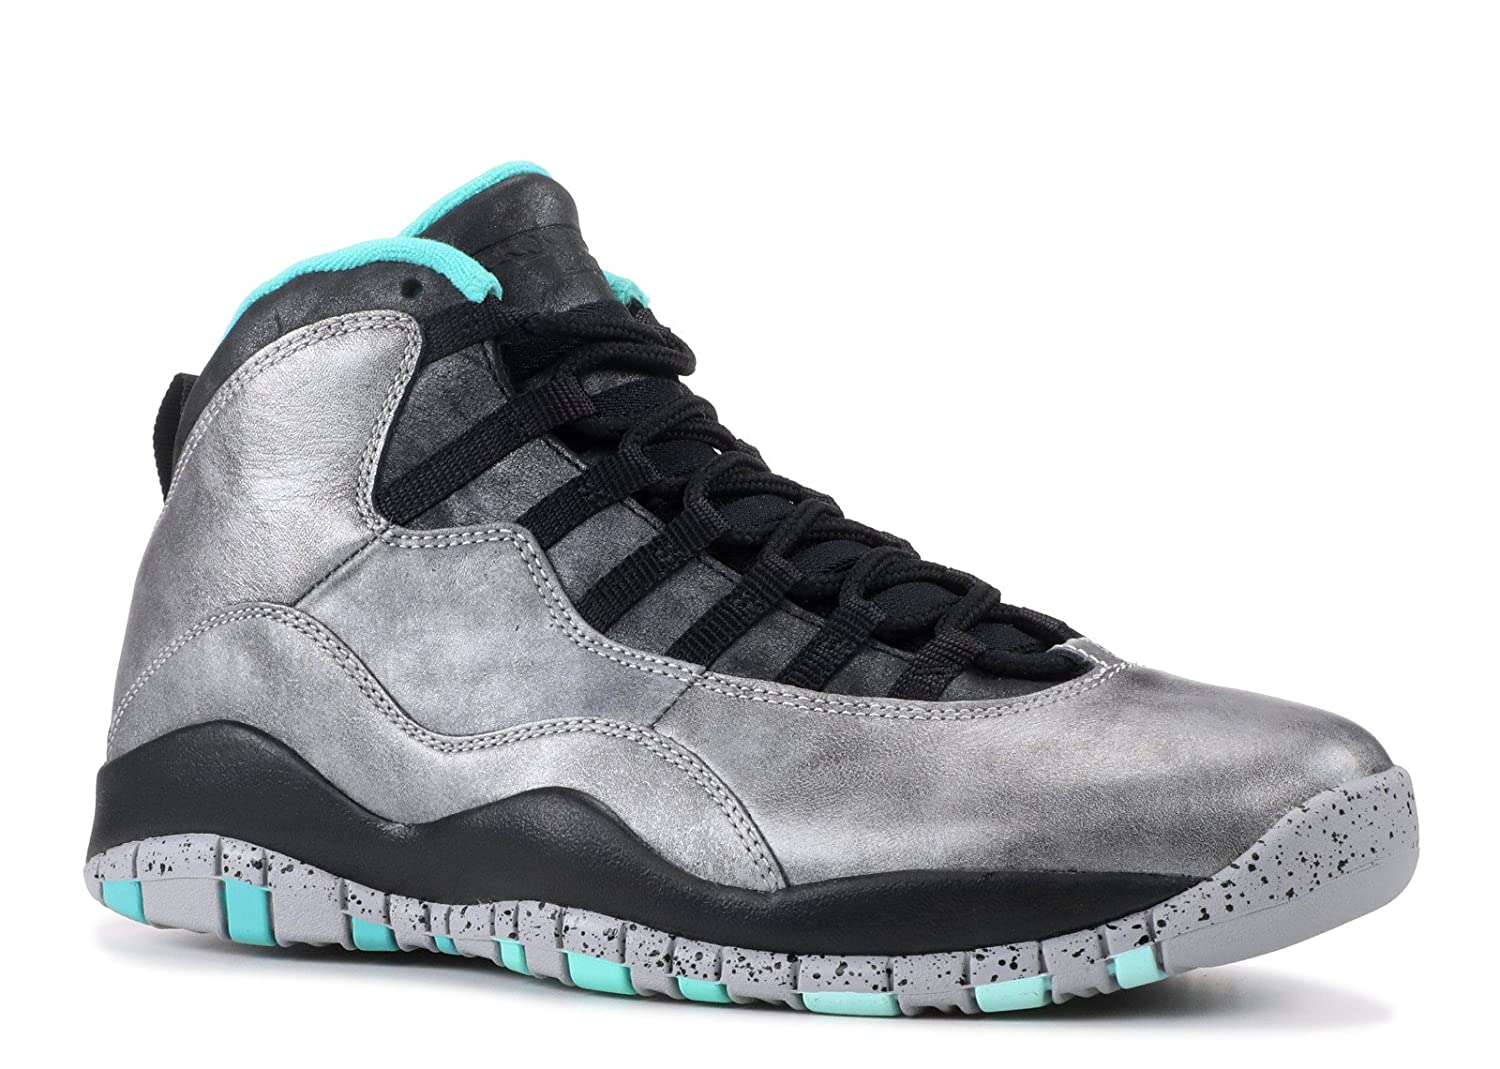 timeless design 84259 95d0a Amazon.com   AIR Jordan 10 Retro 30TH  Lady Liberty  - 705178-045    Basketball